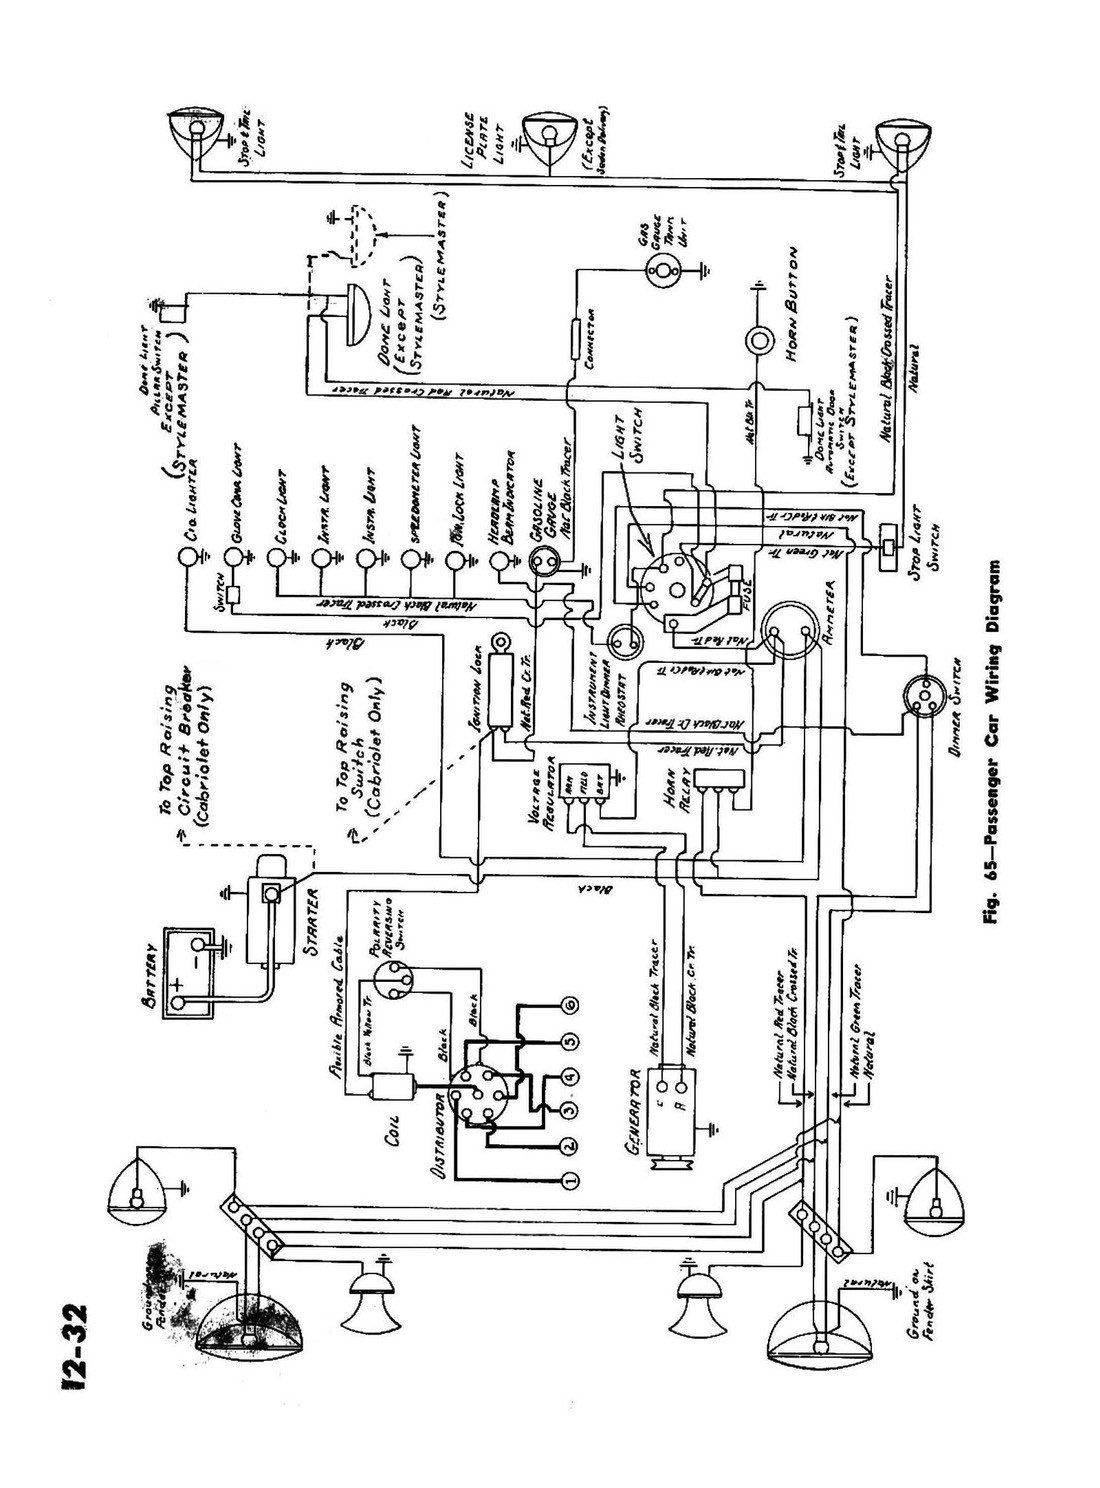 Building Electrical Installation Wiring Diagram 1985 Peterbilt 359 Electric Schematic Circuit Fancy Auto Pertaining To